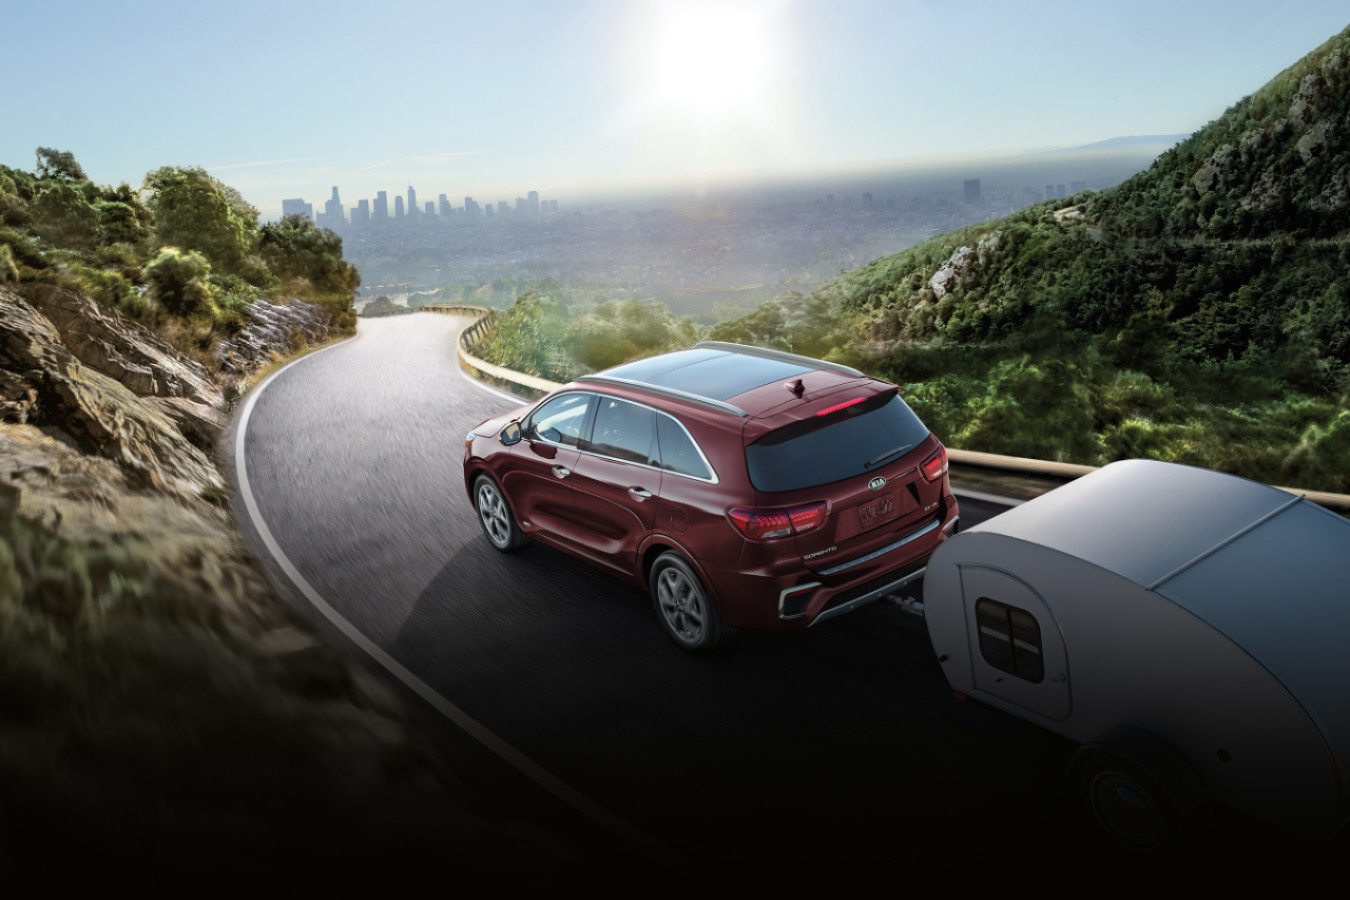 2020 Kia Sorento Leasing in Huntington, NY